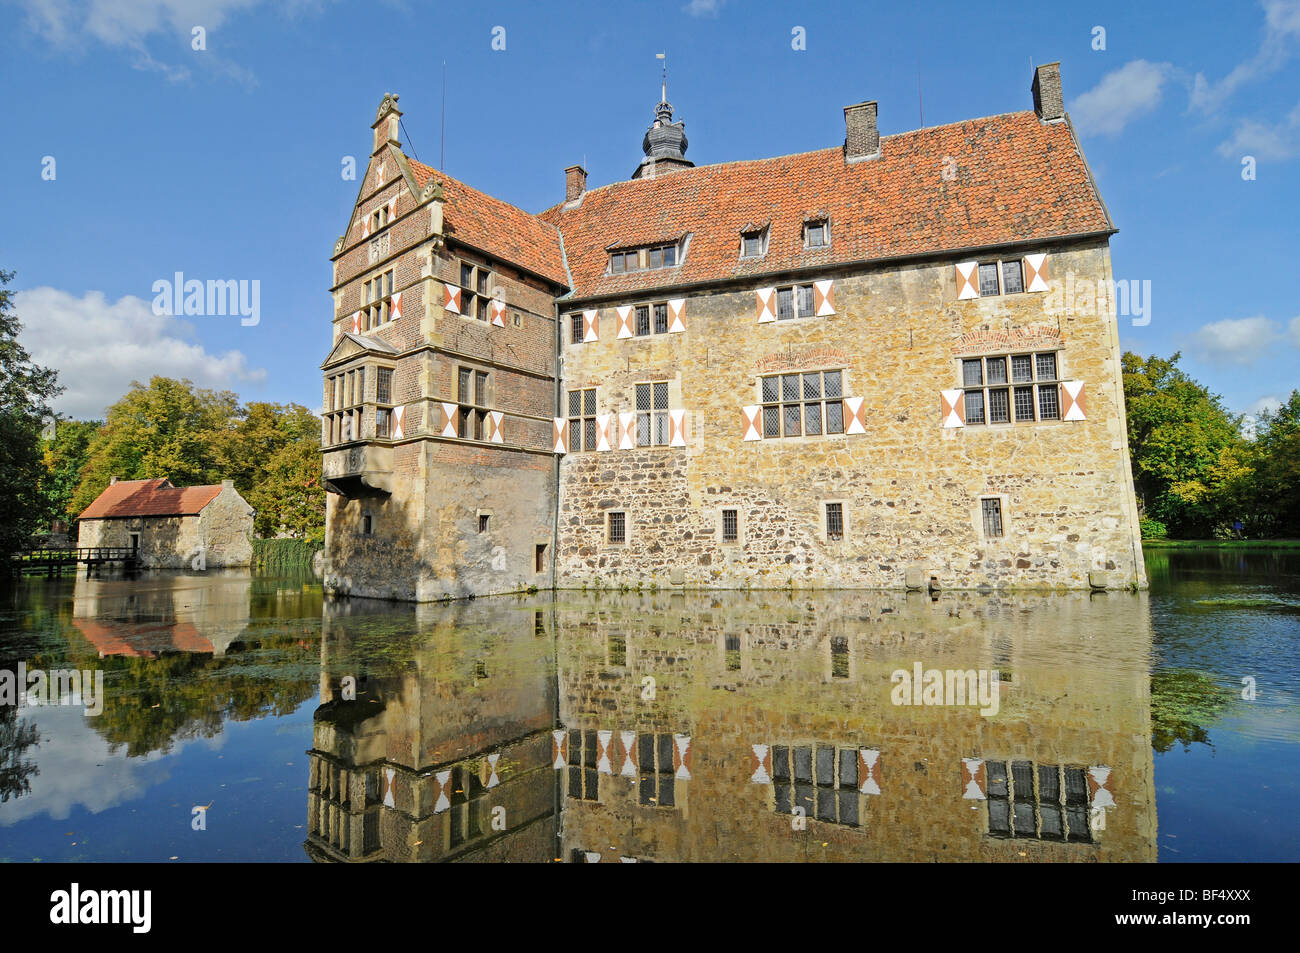 Wasserburg Vischering A Moated Castle Reflected In Its Moat Stock